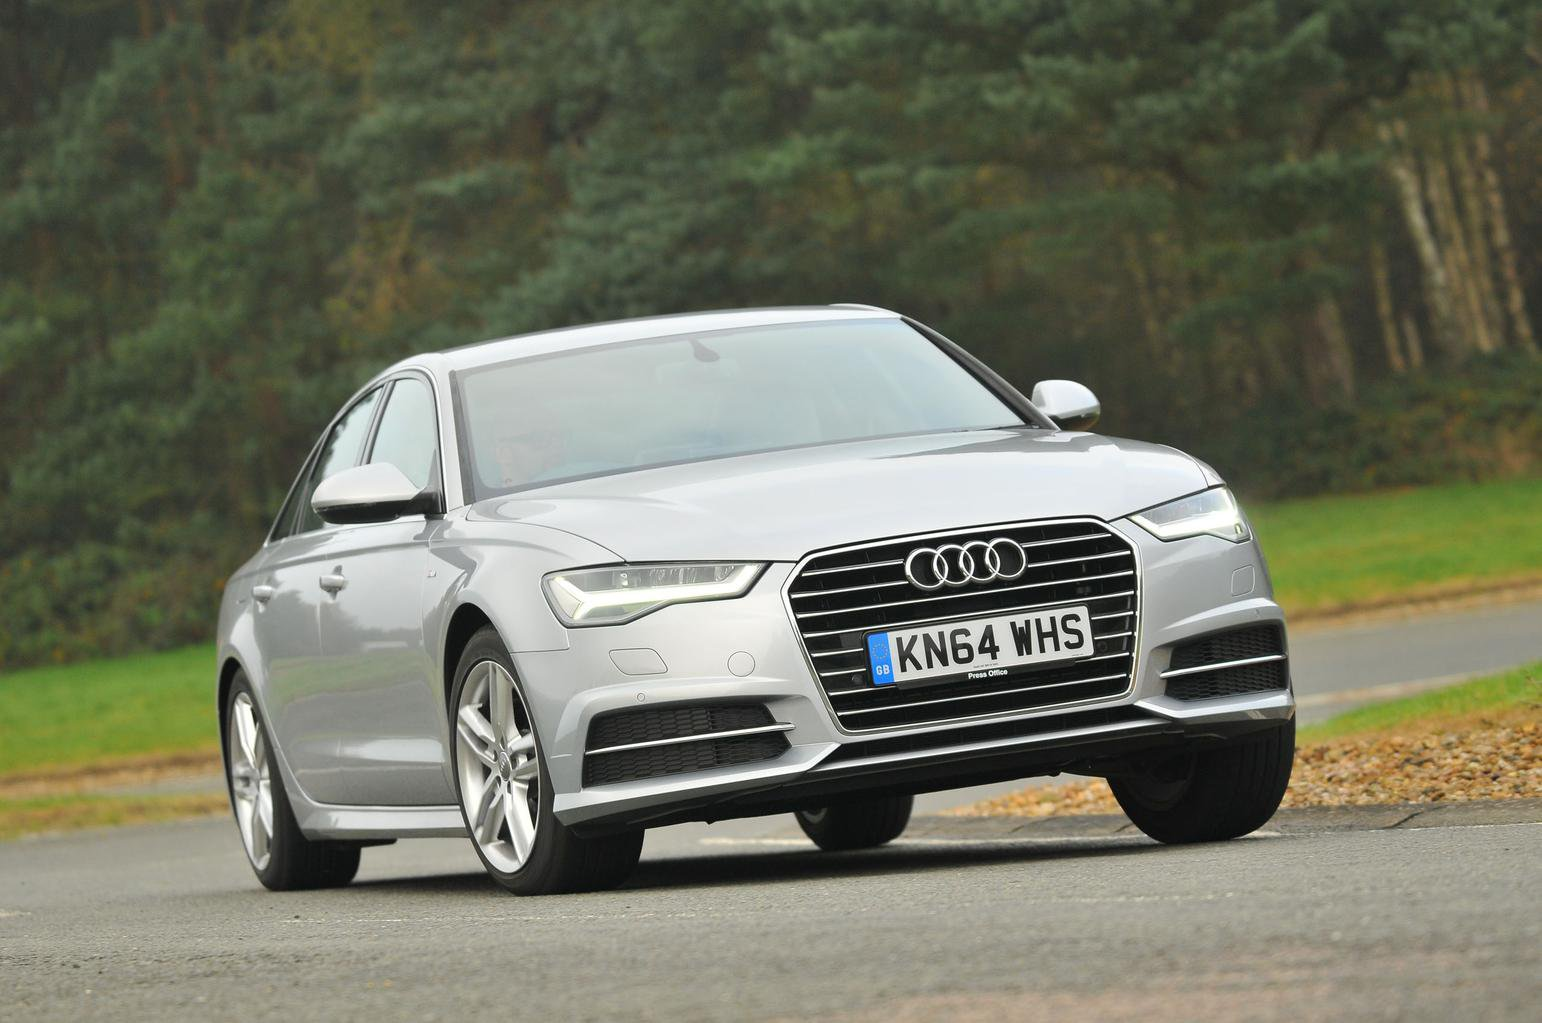 5 reasons to buy an Audi A6